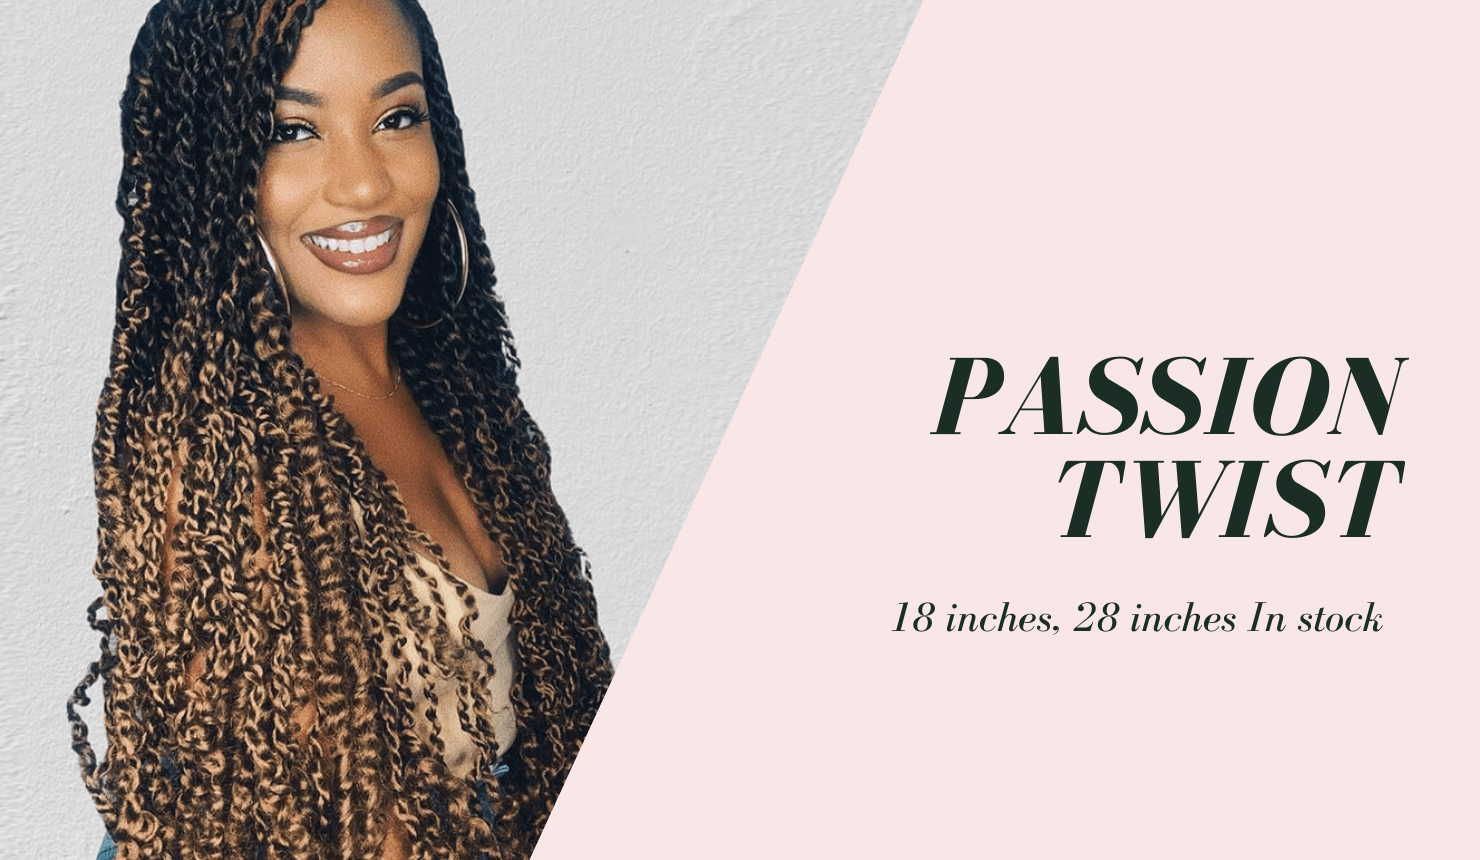 passion twist golden rule hair